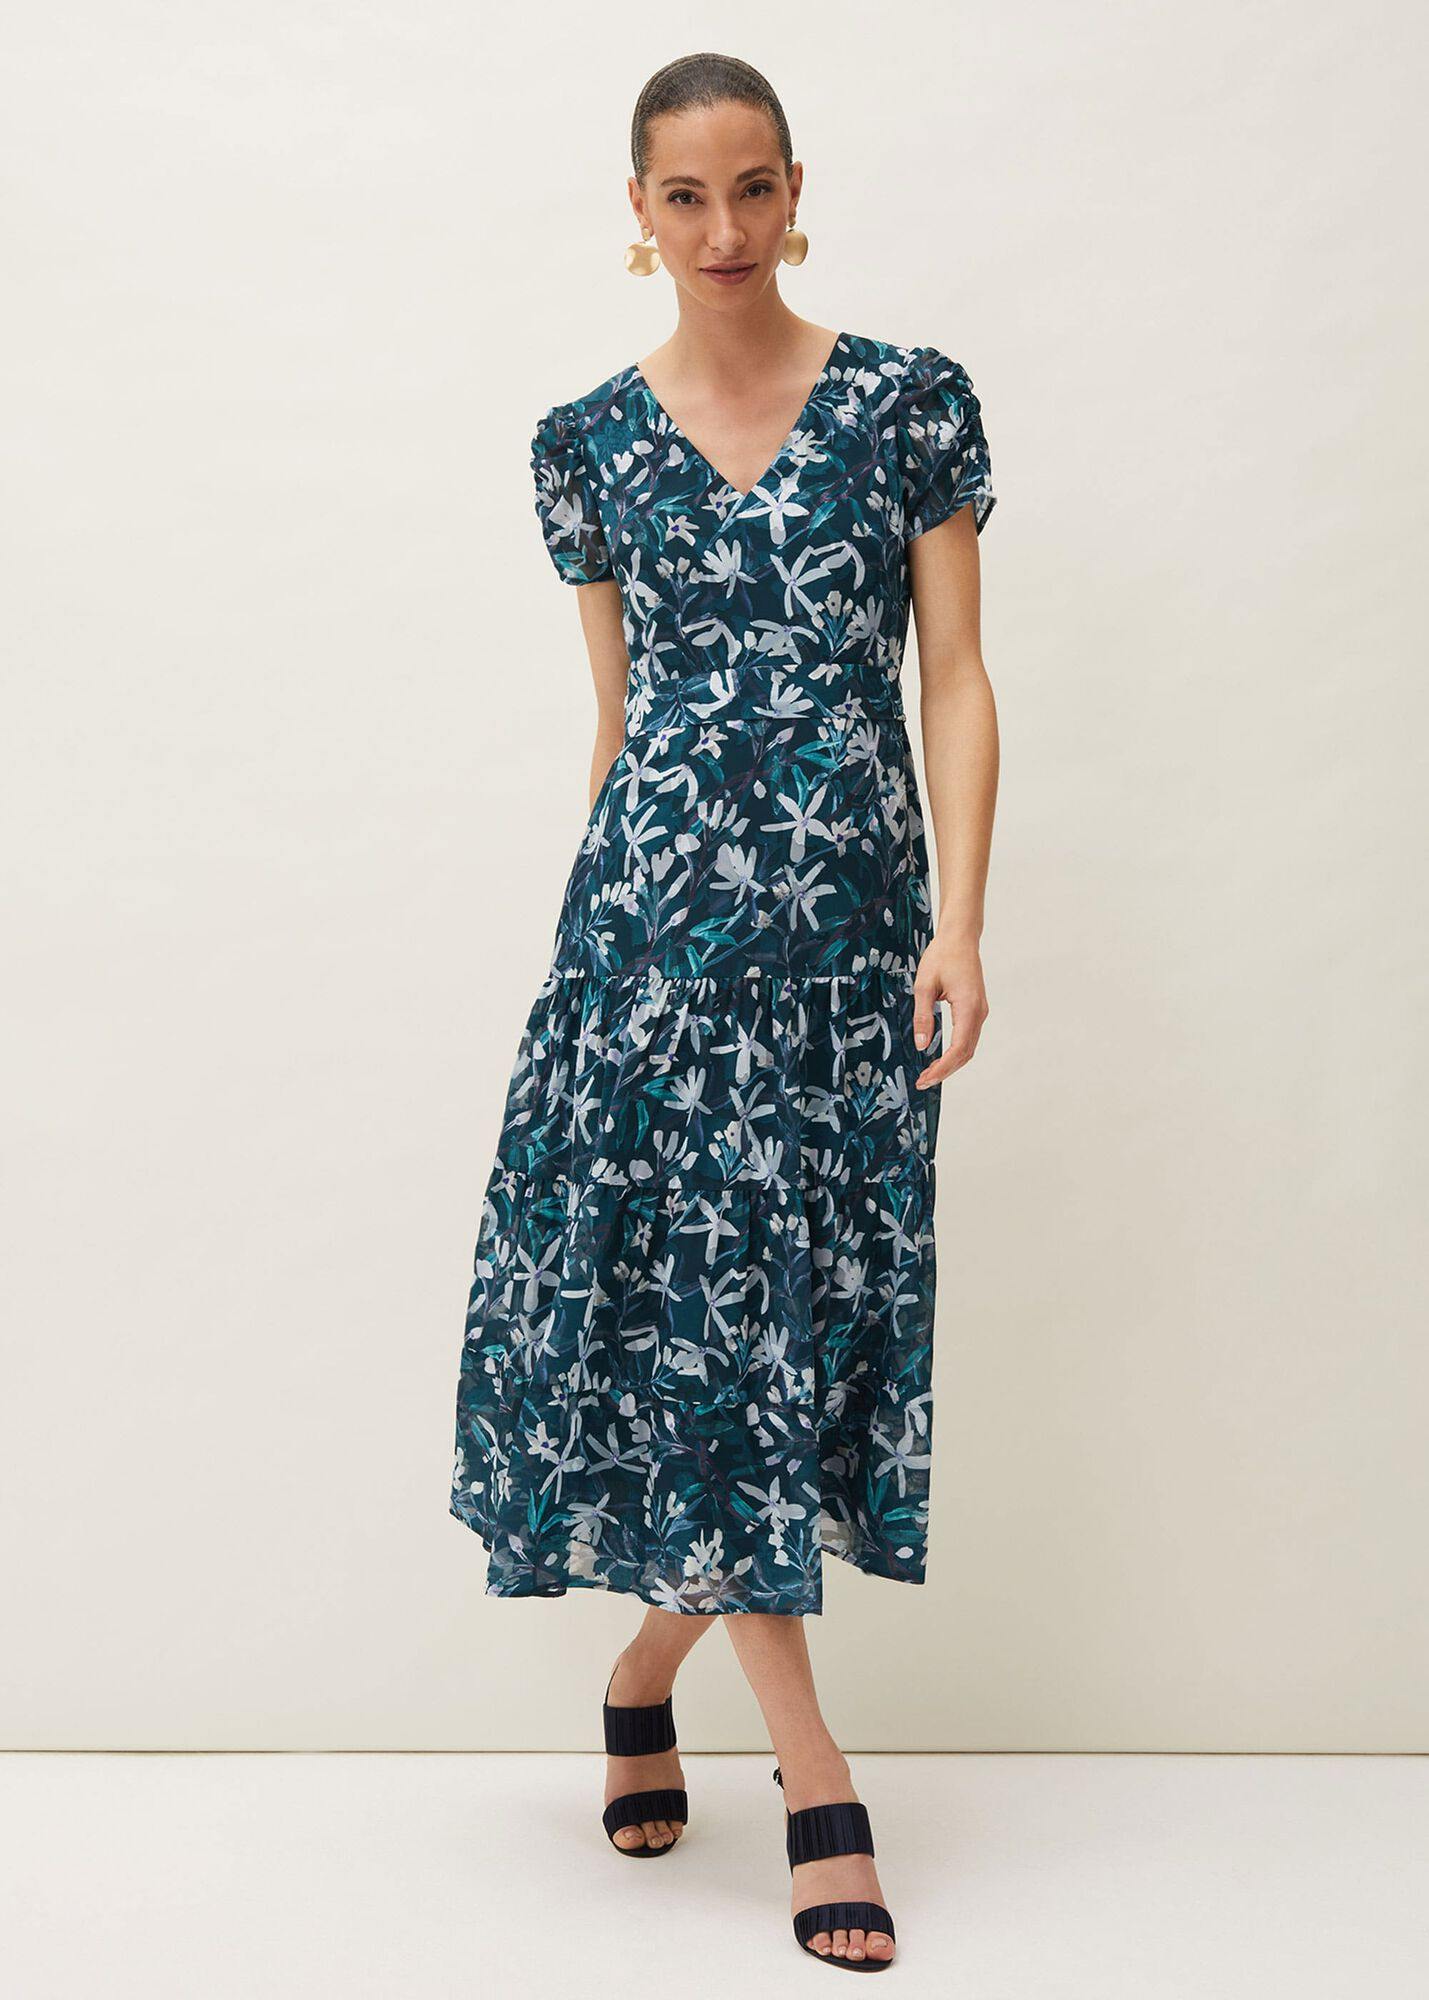 Lola Floral Dress Phase Eight Occasion Wear Dresses Floral Print